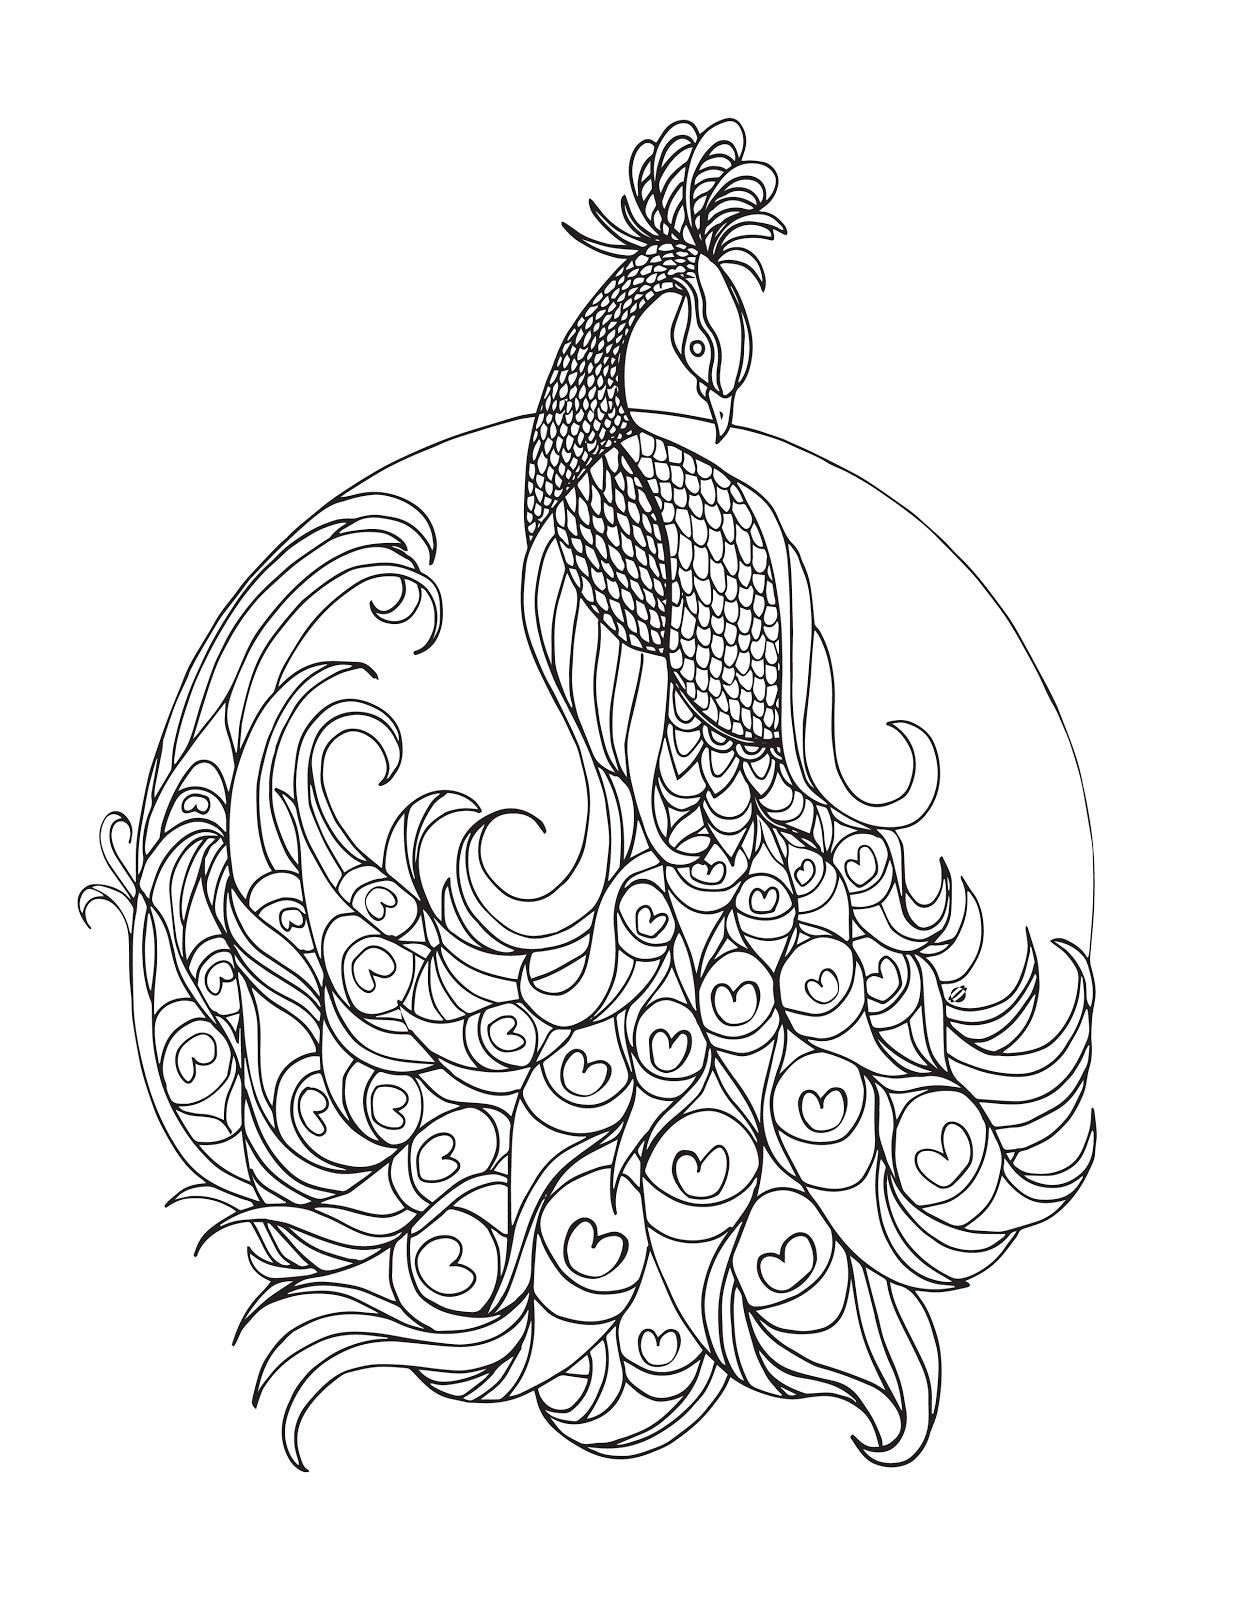 Pin On Adult Colouring Pages